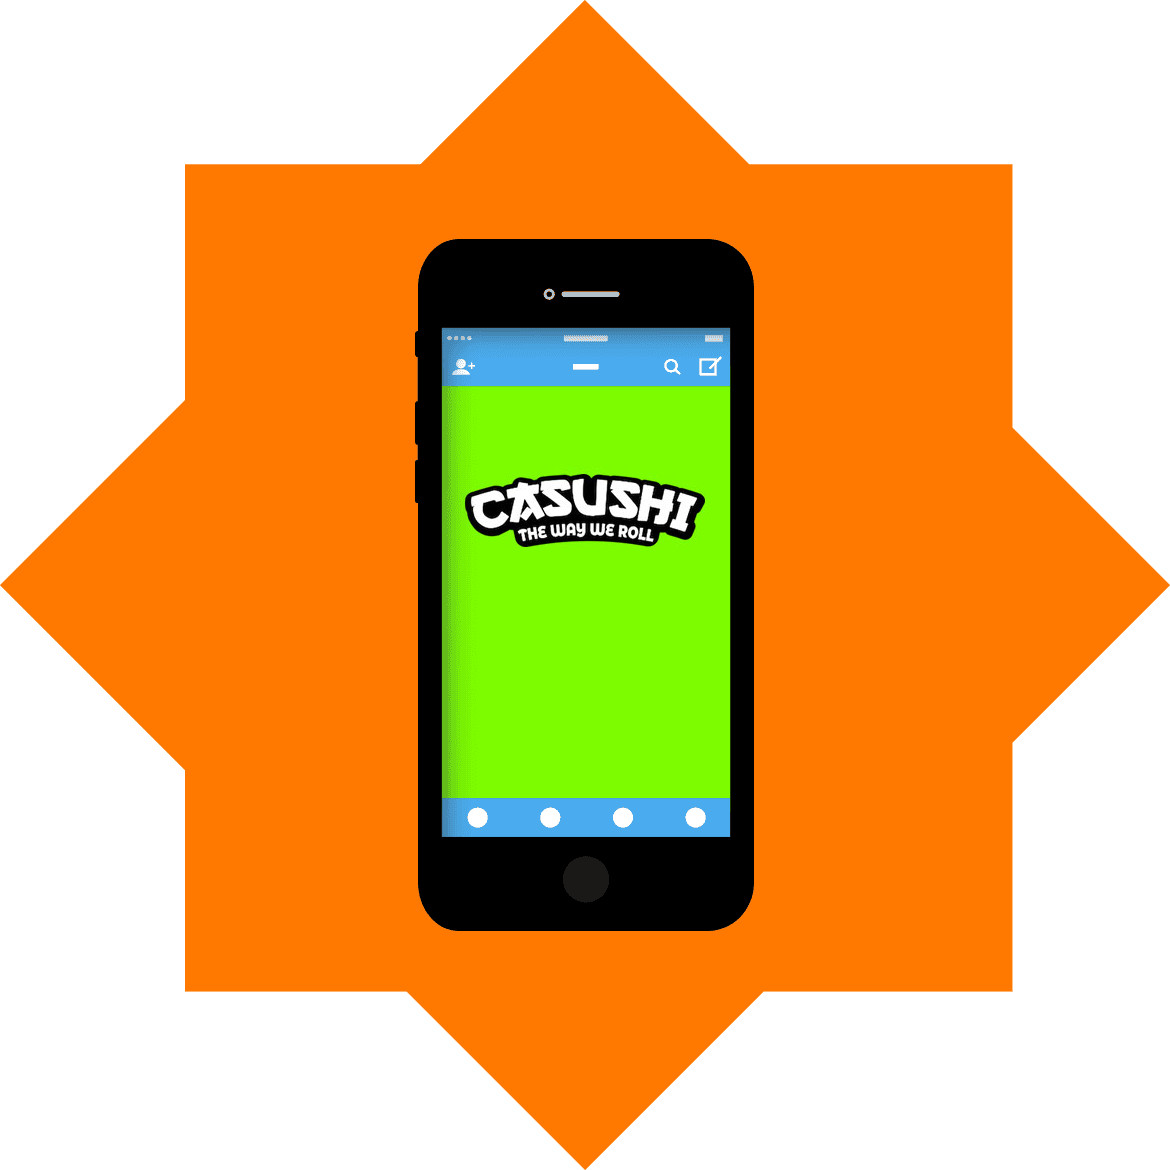 Casushi - Mobile friendly